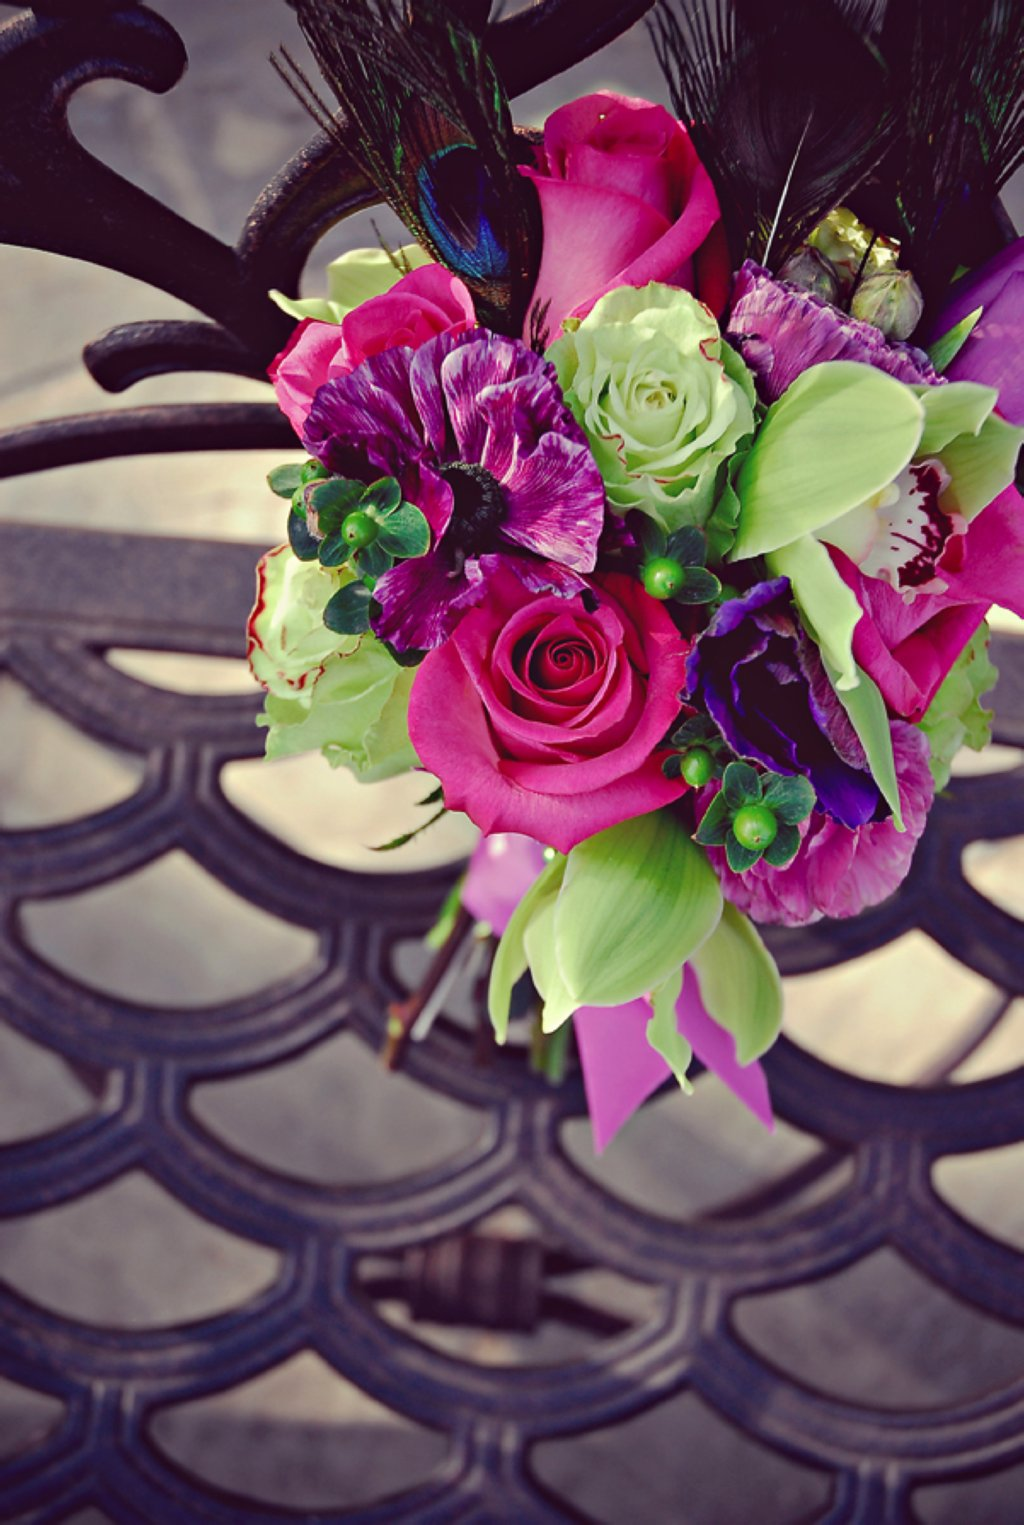 Bridal bouquet of pink roses purple flowers green orchids statement bridal bouquet of pink roses purple flowers green orchids izmirmasajfo Images